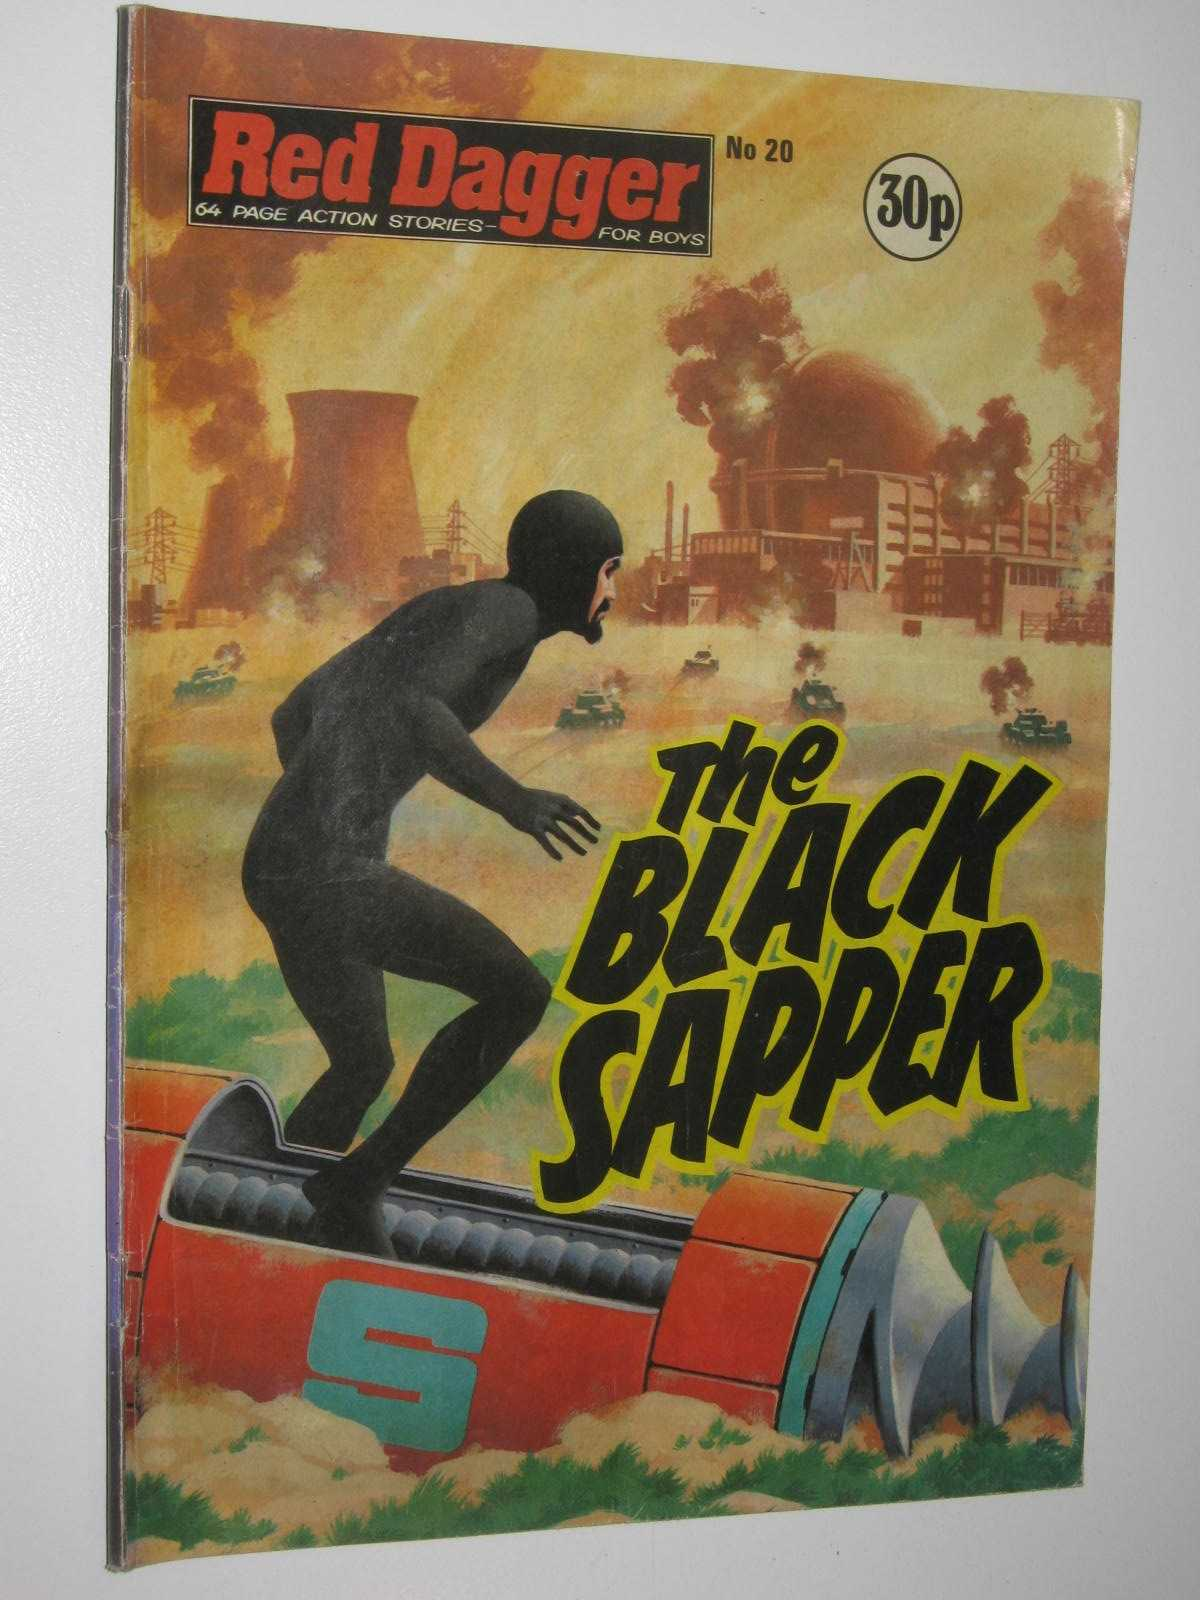 Image for Red Dagger No. 20: The Black Sapper : 64 Page Action Stories for Boys